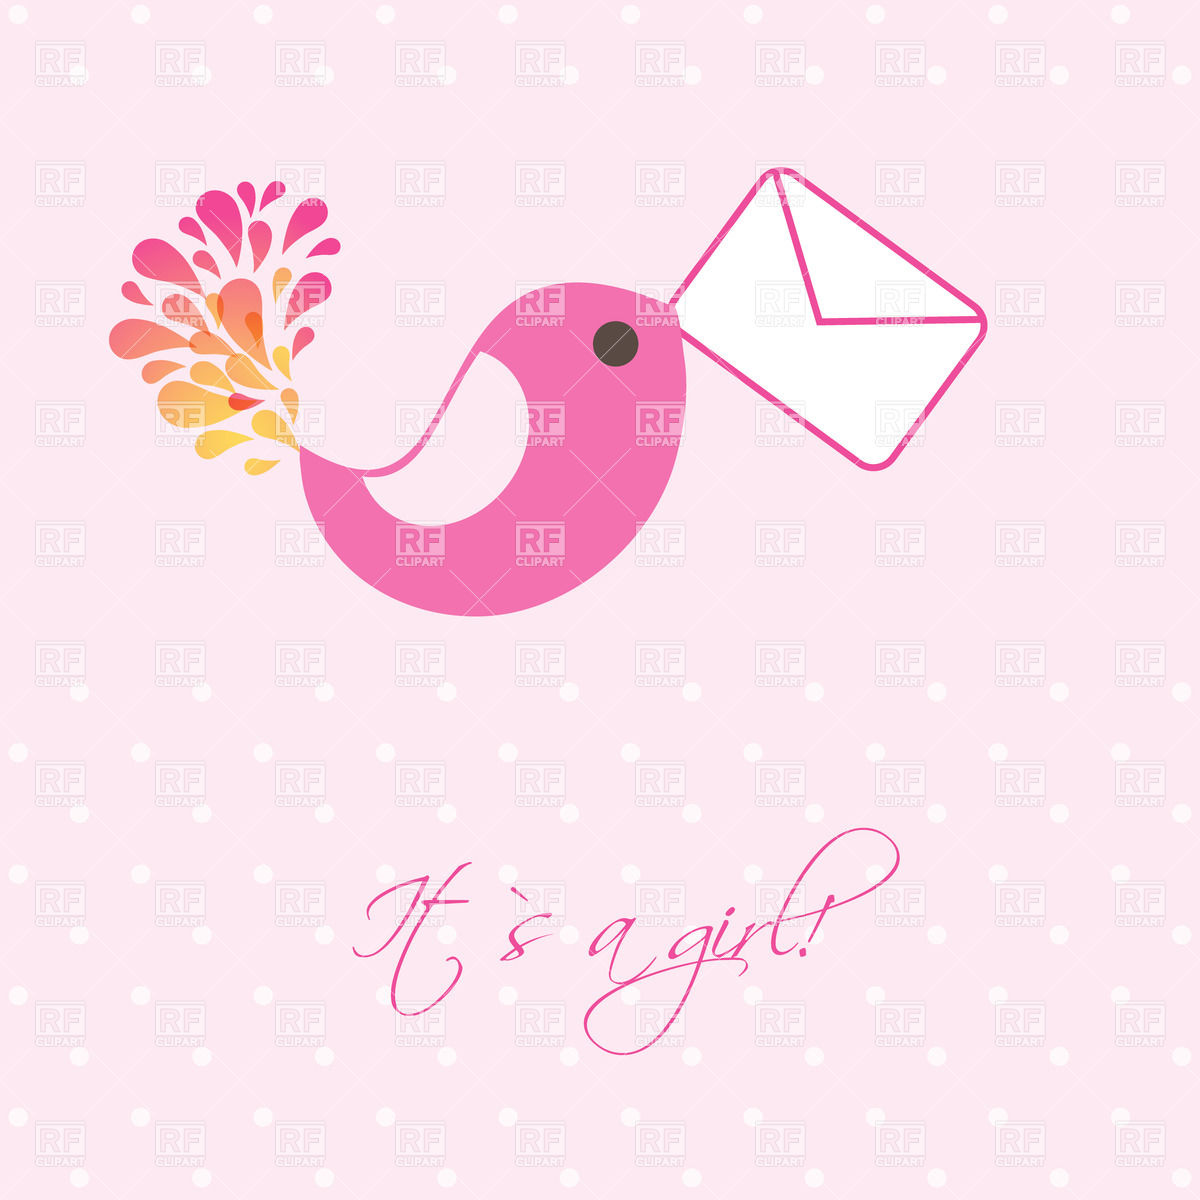 Cute pink bird carrying mail envelope Vector Image #24073.